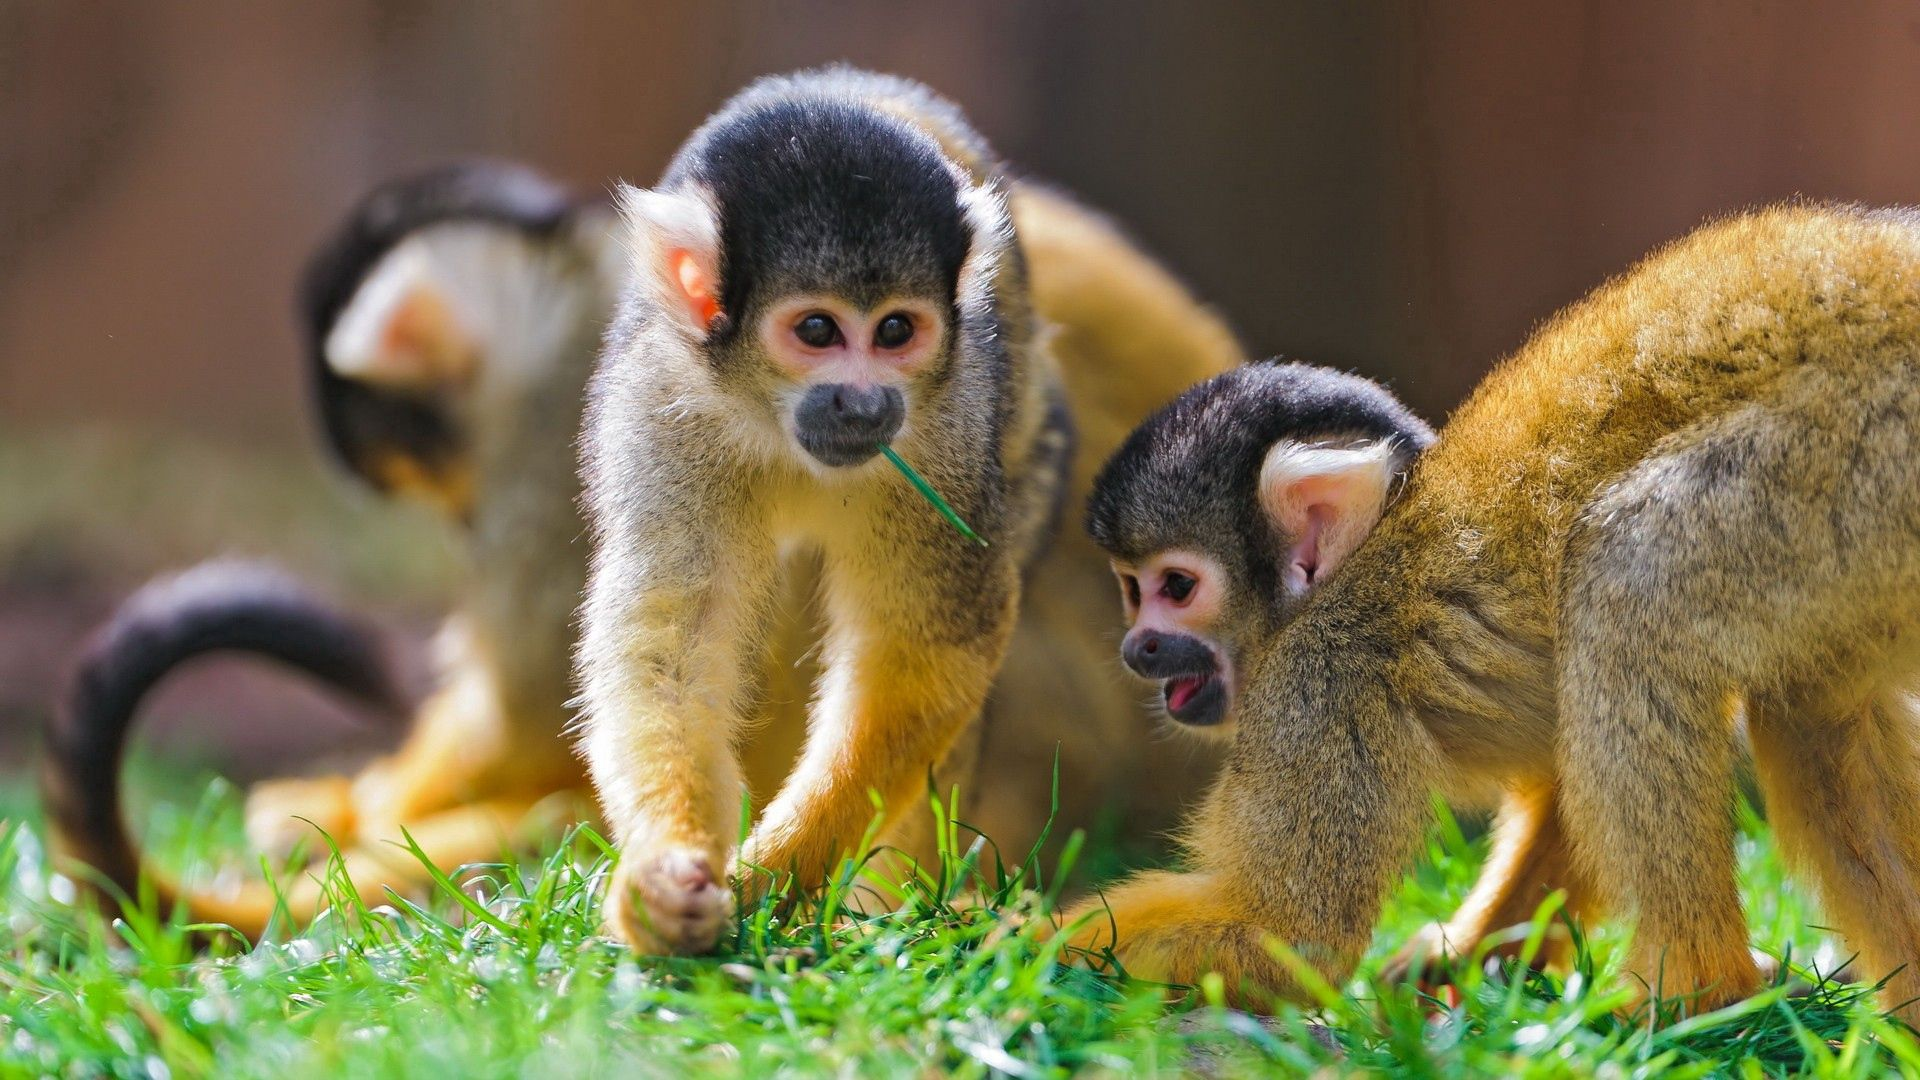 150297 Screensavers and Wallpapers Monkeys for phone. Download Animals, Grass, Monkeys, Stroll, Family, Playful pictures for free